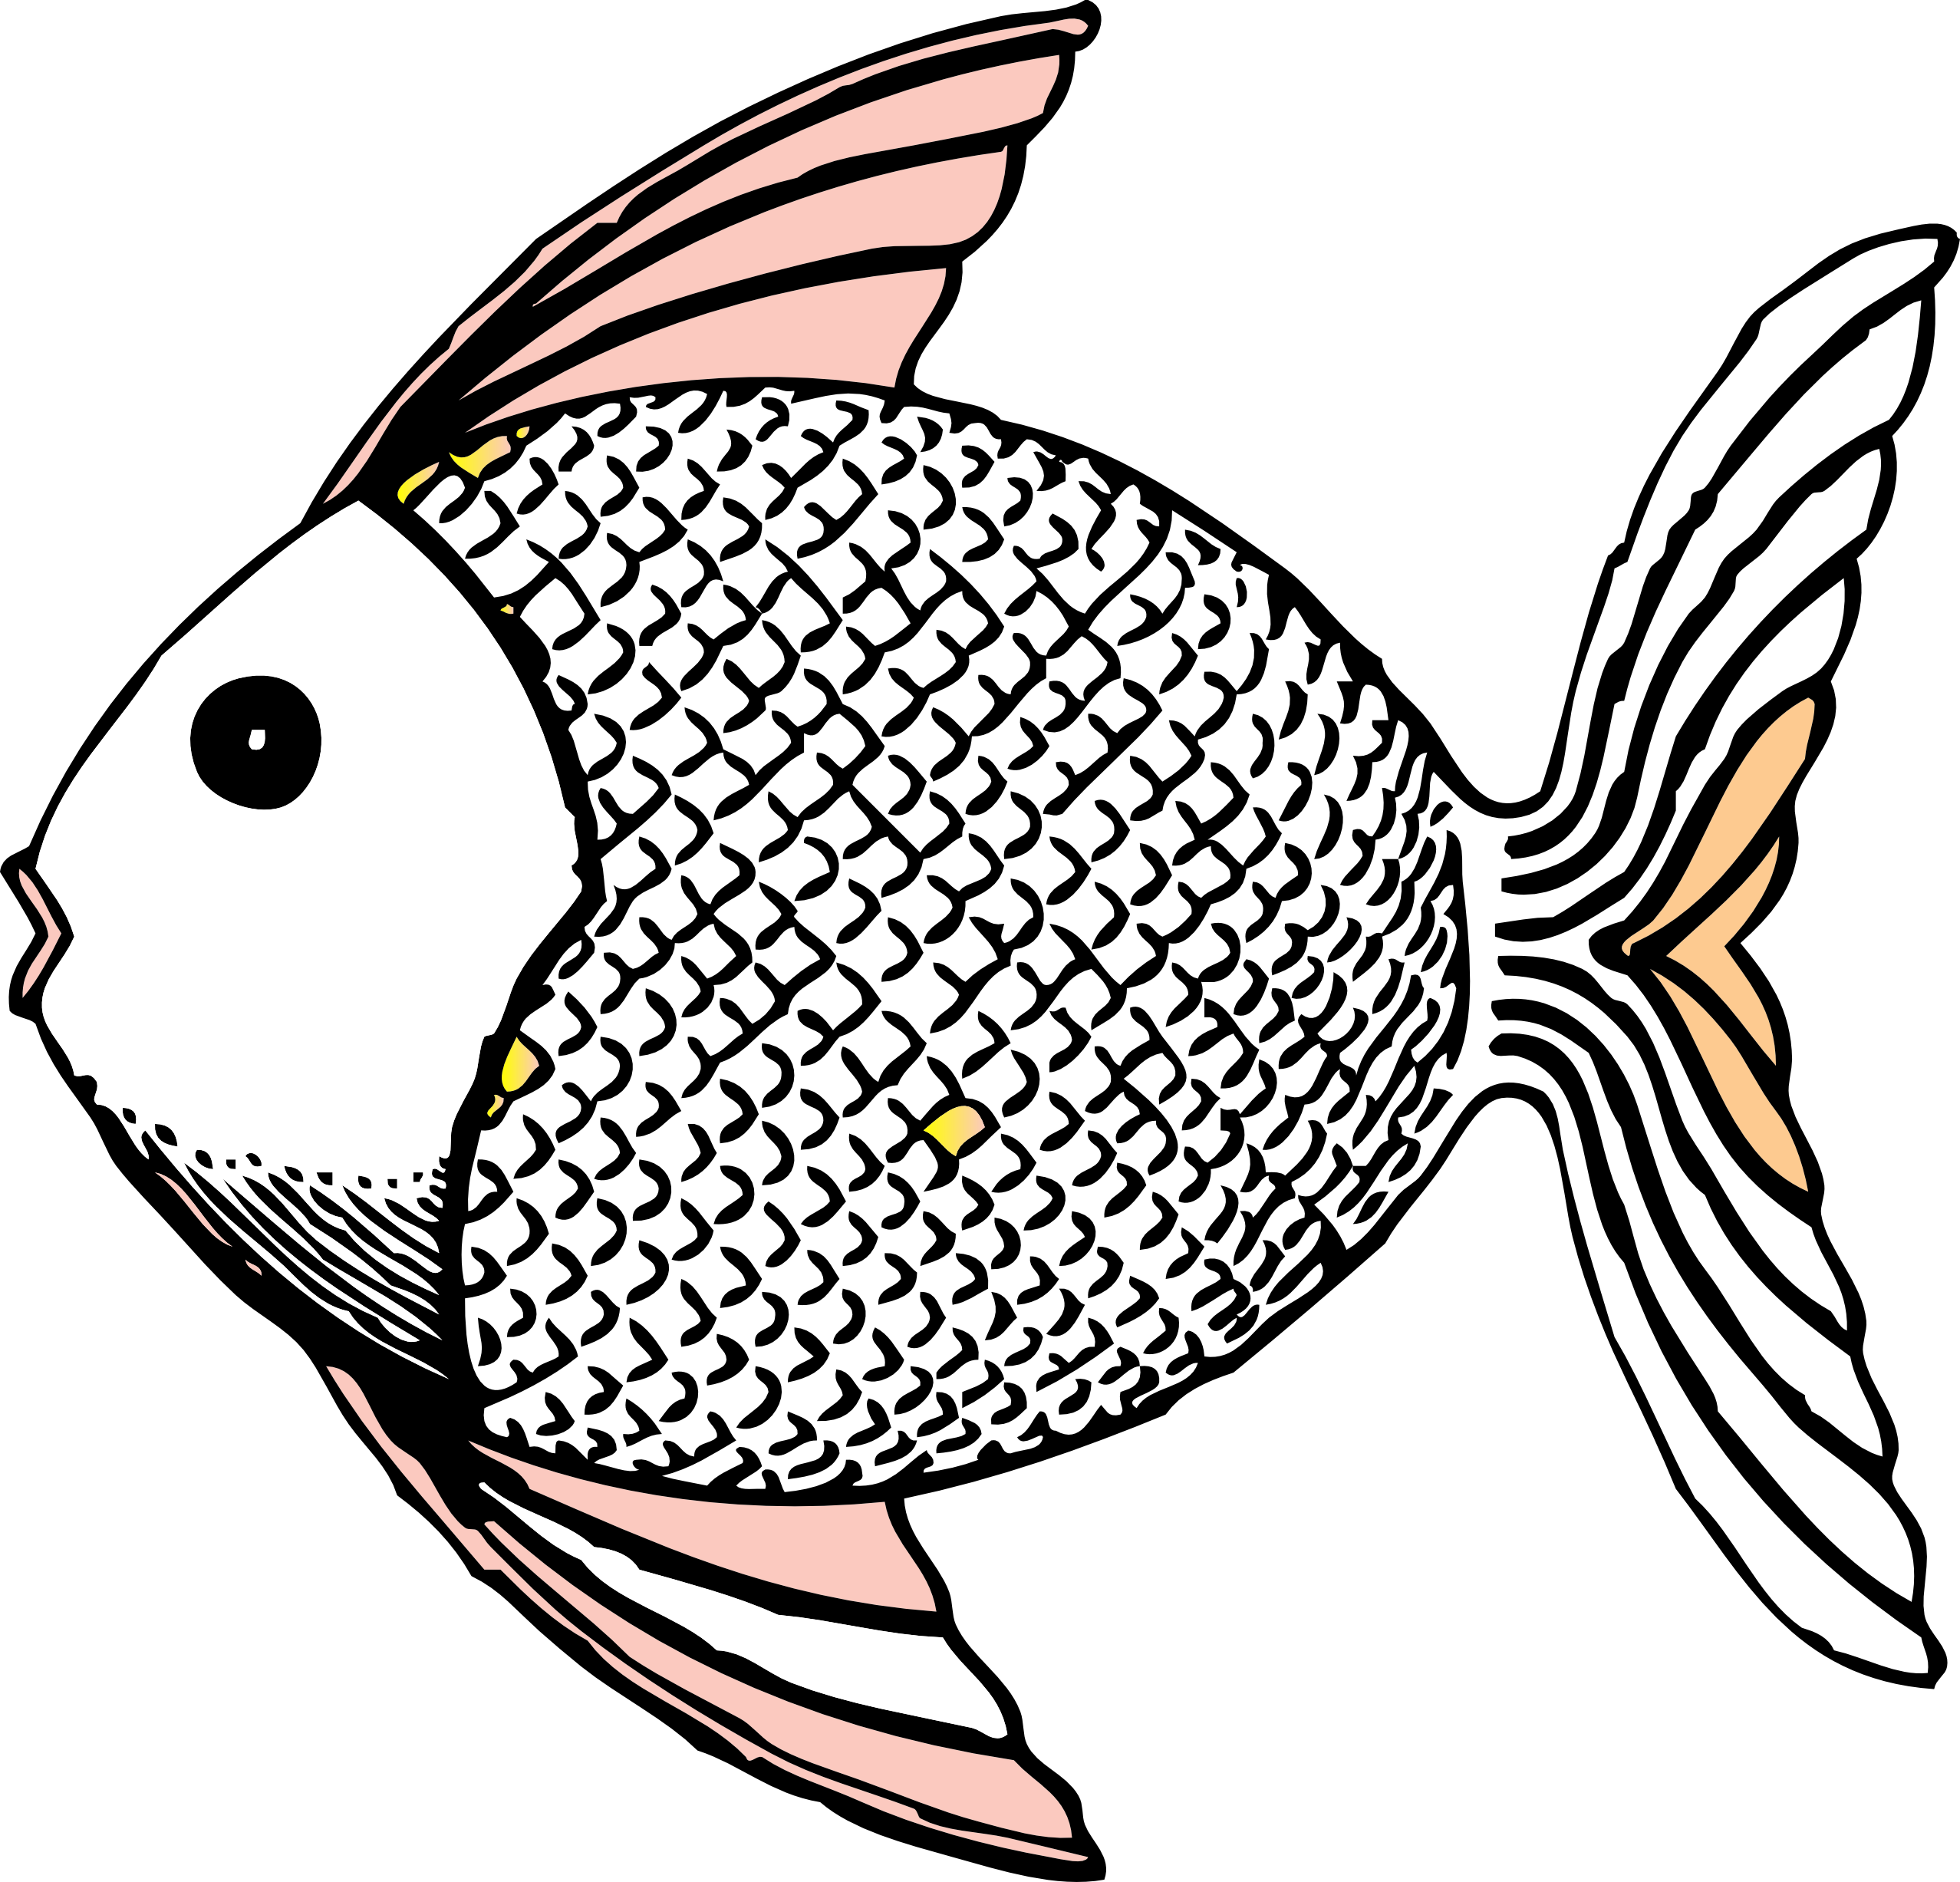 Black and white salt water fish clipart clipart freeuse library Fish Clip Art Black and White | tropical fish black white line art ... clipart freeuse library